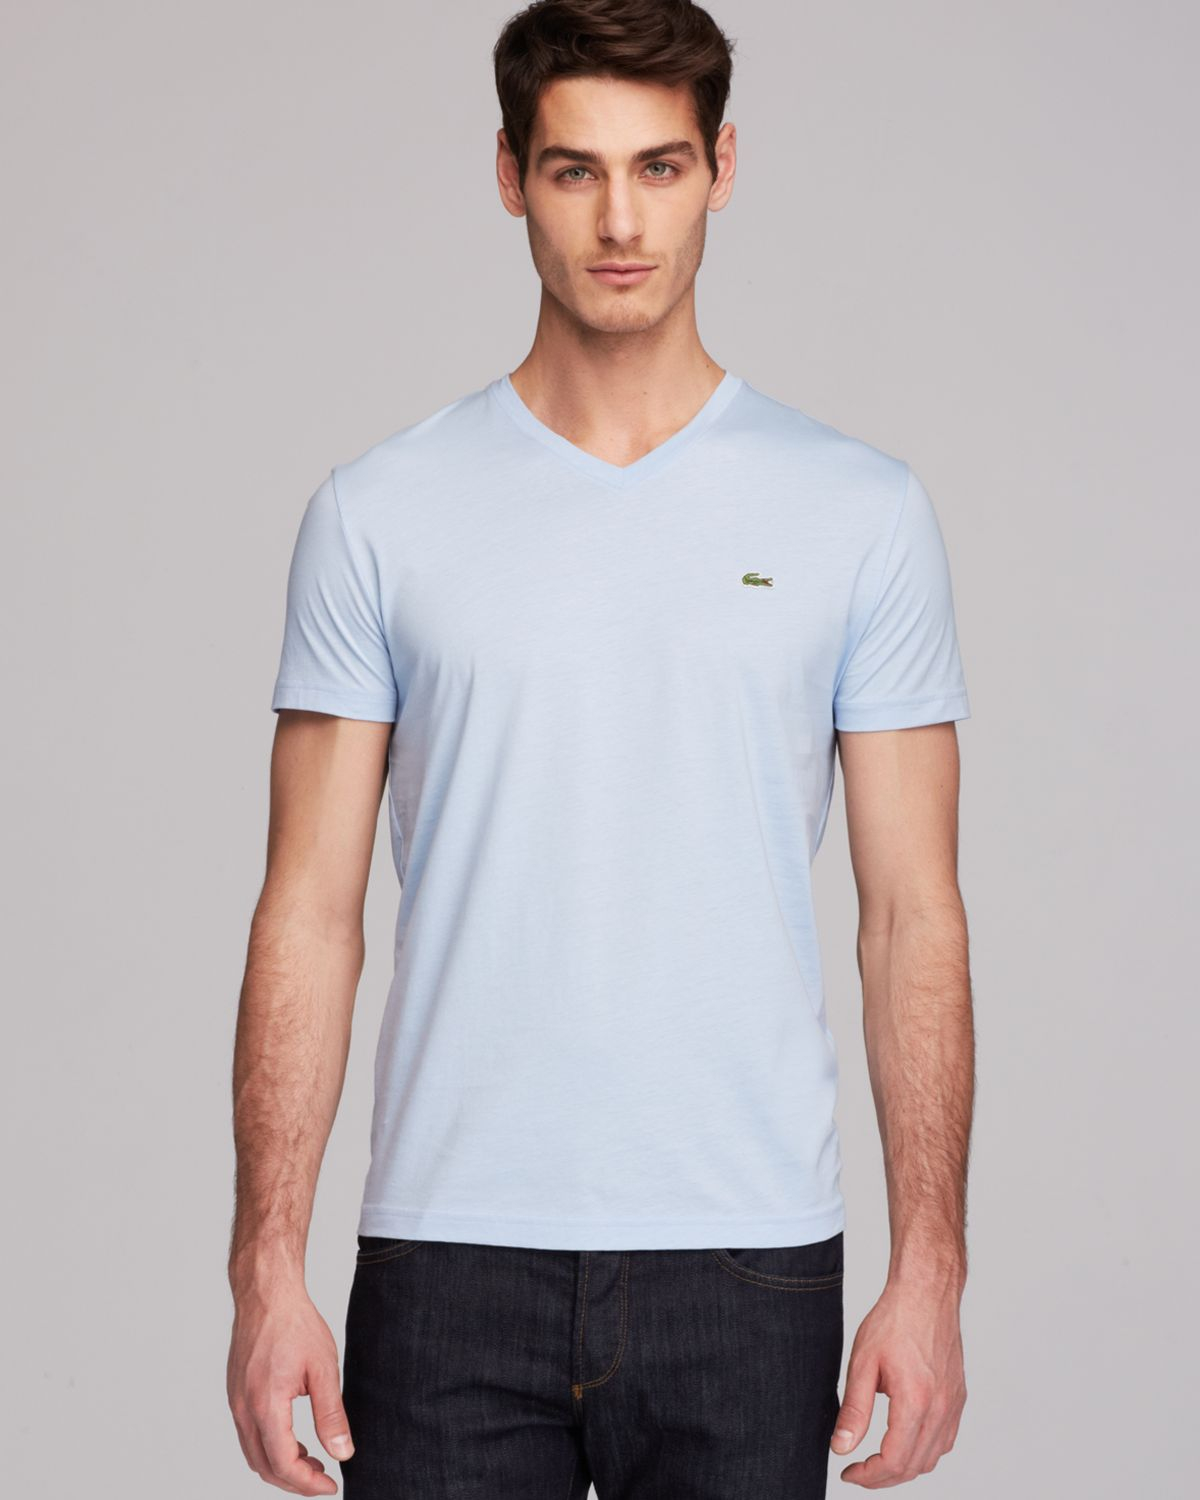 Lacoste Pima Cotton Jersey Vneck Tee In Blue For Men